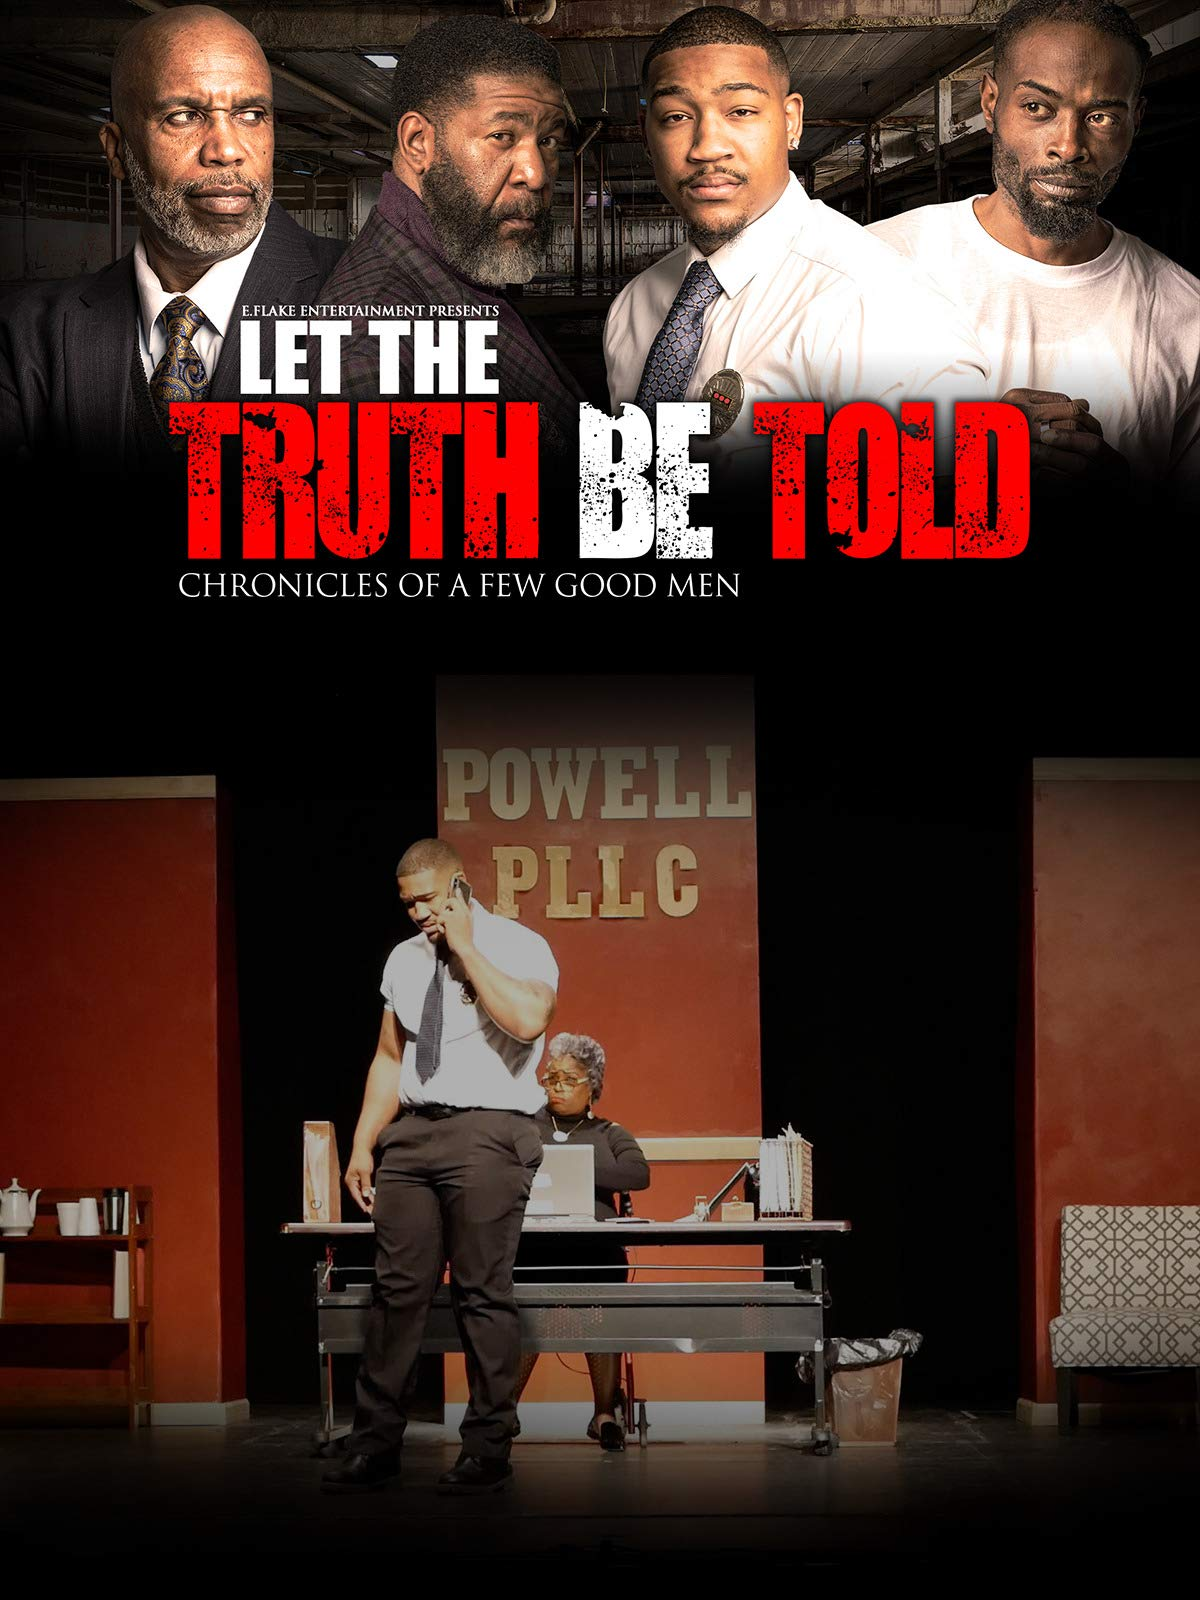 Let The Truth Be Told: Chronicles of a Few Good Men